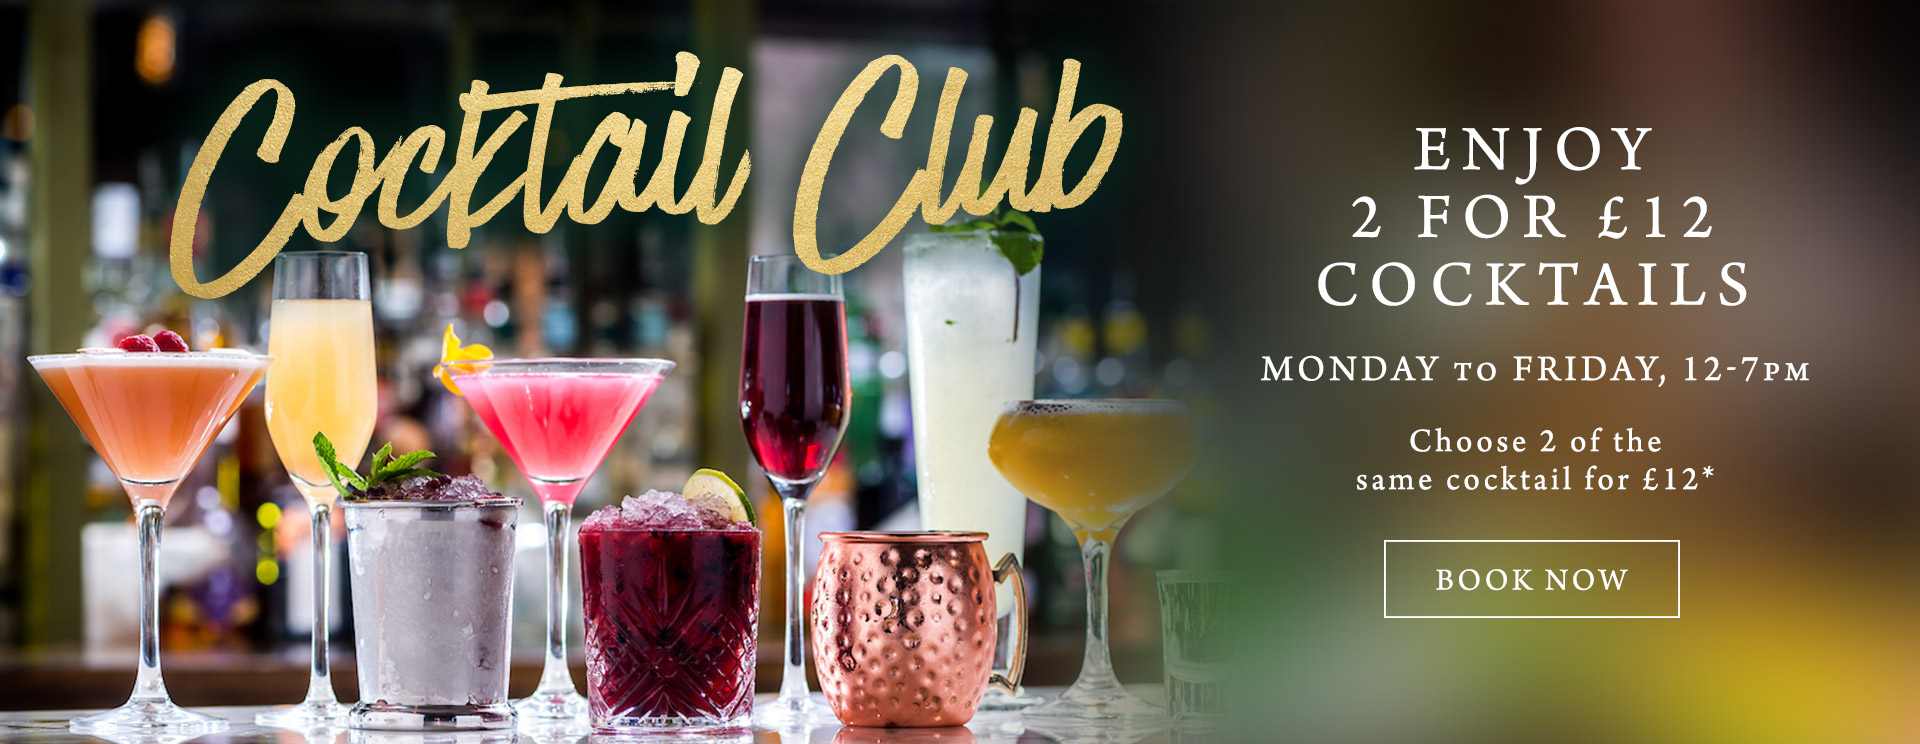 2 for £12 cocktails at The Victoria